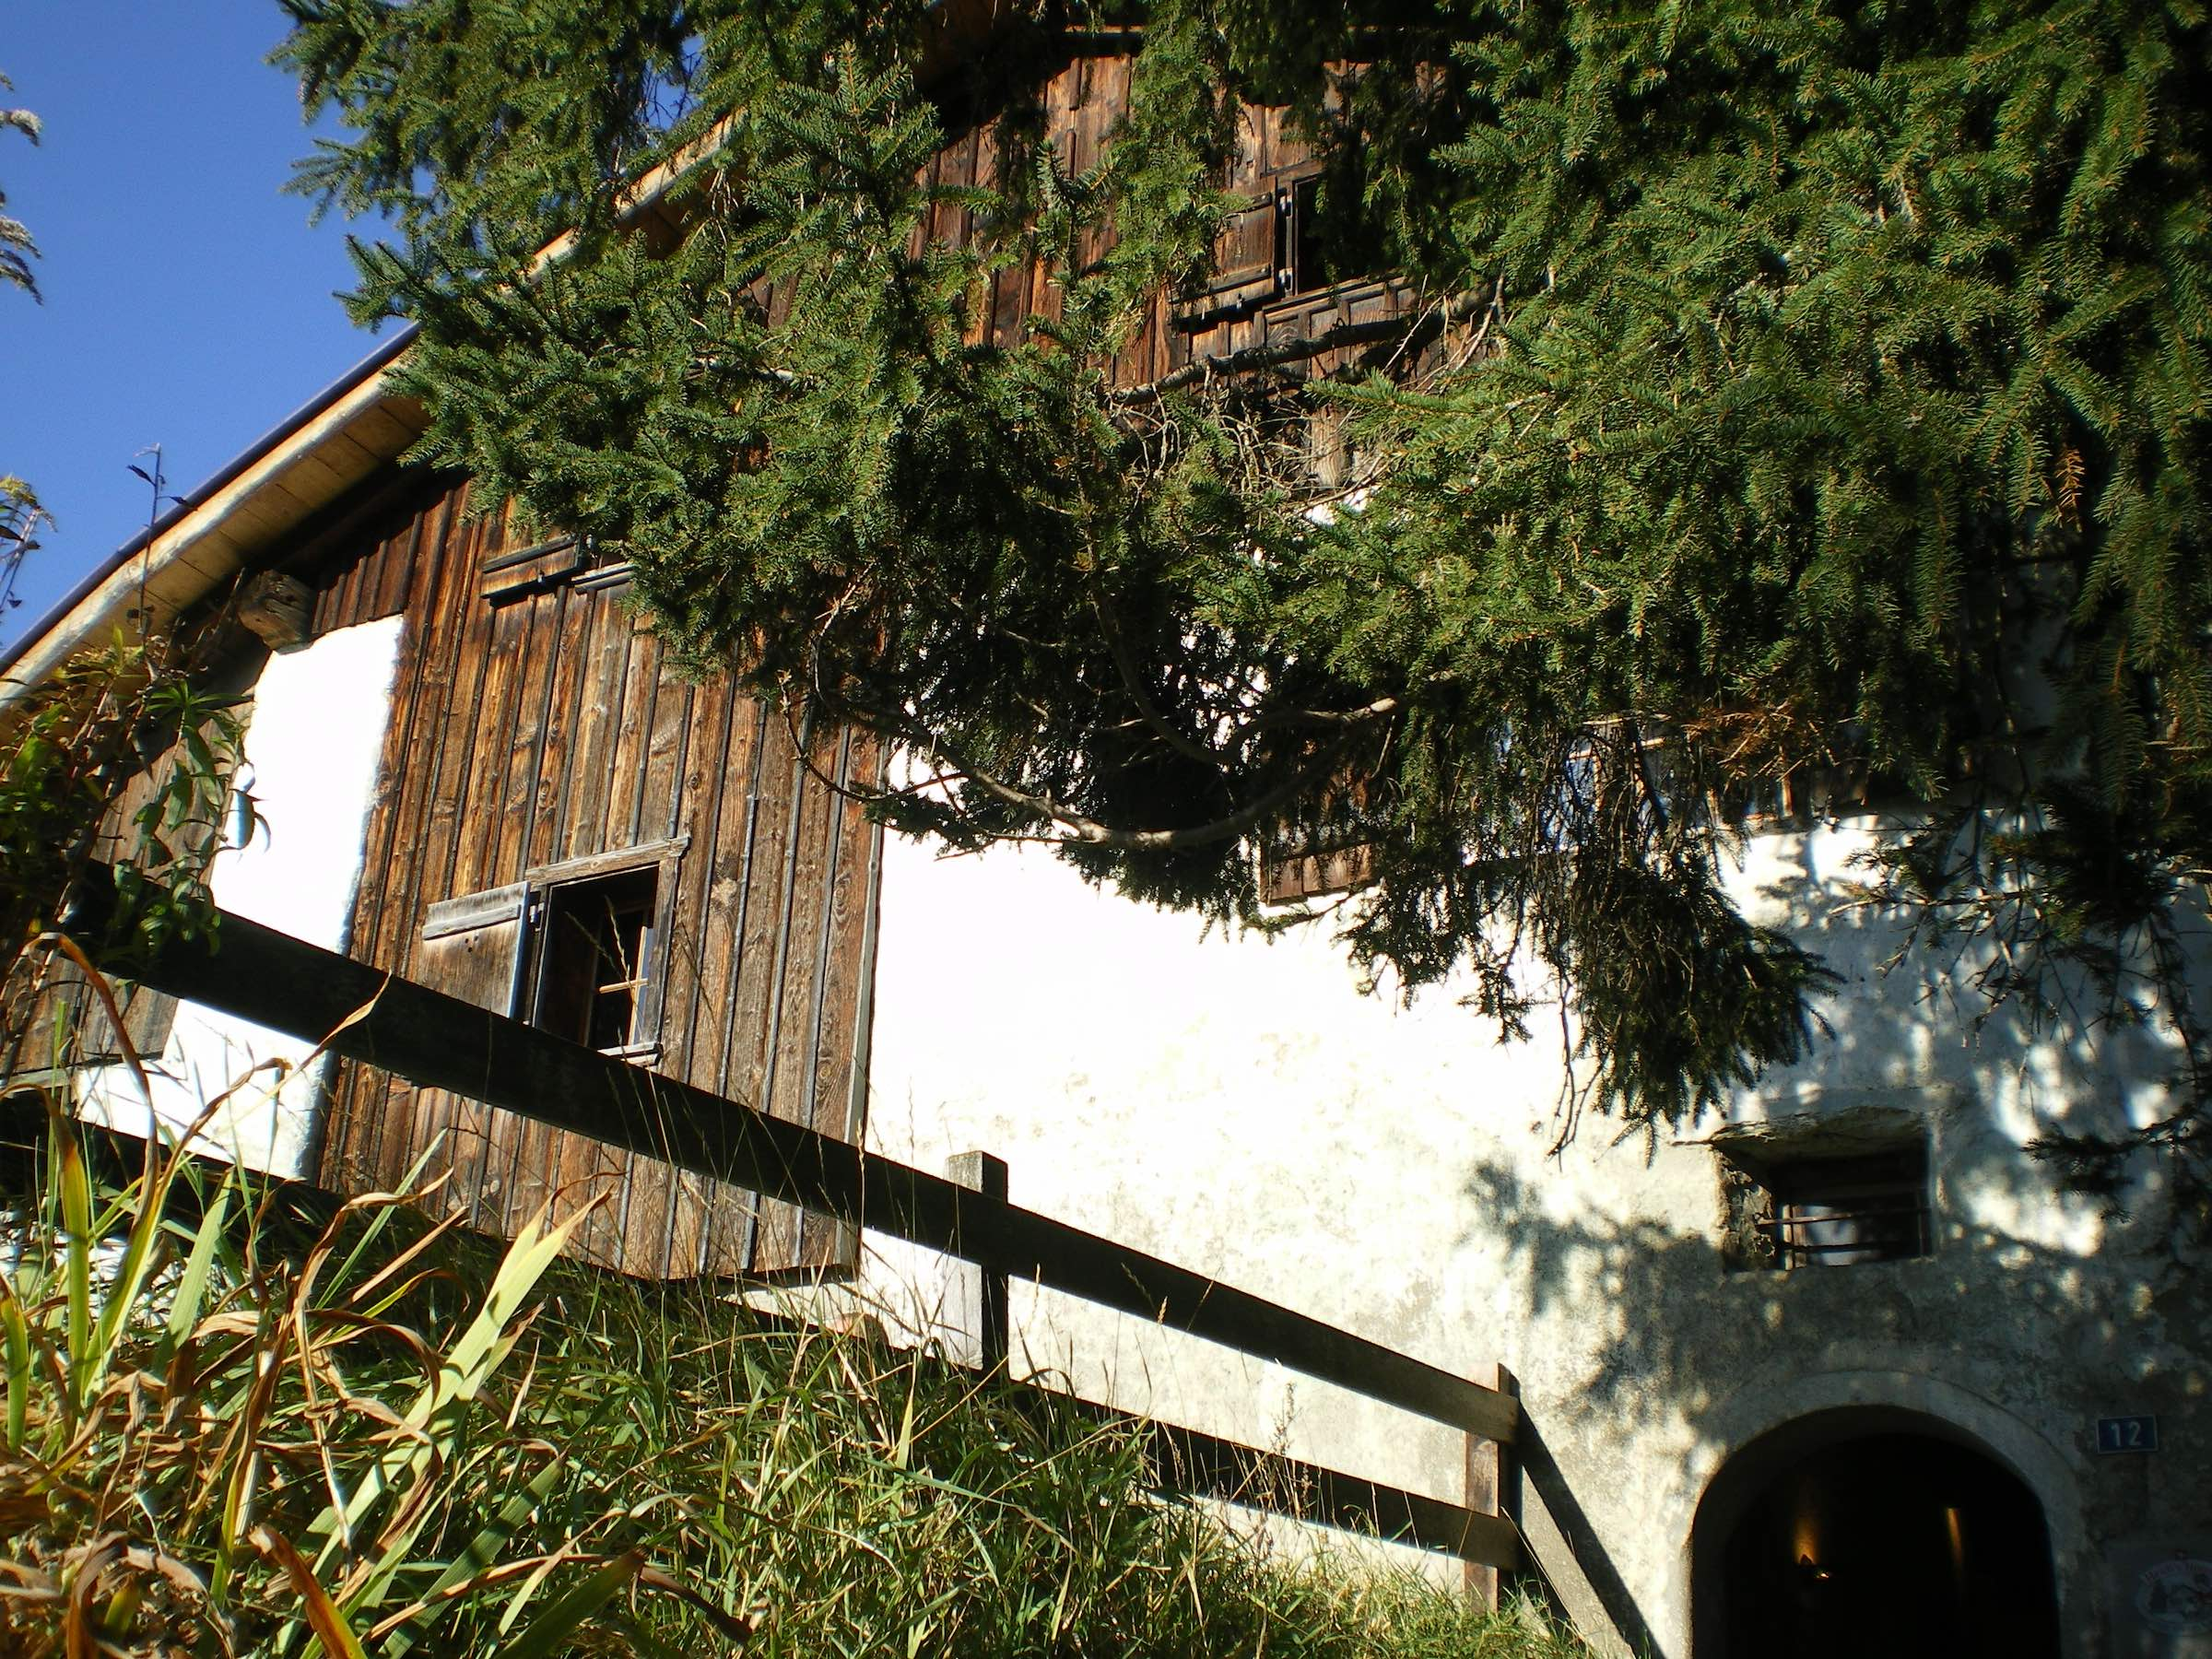 Side view of Heidi's home